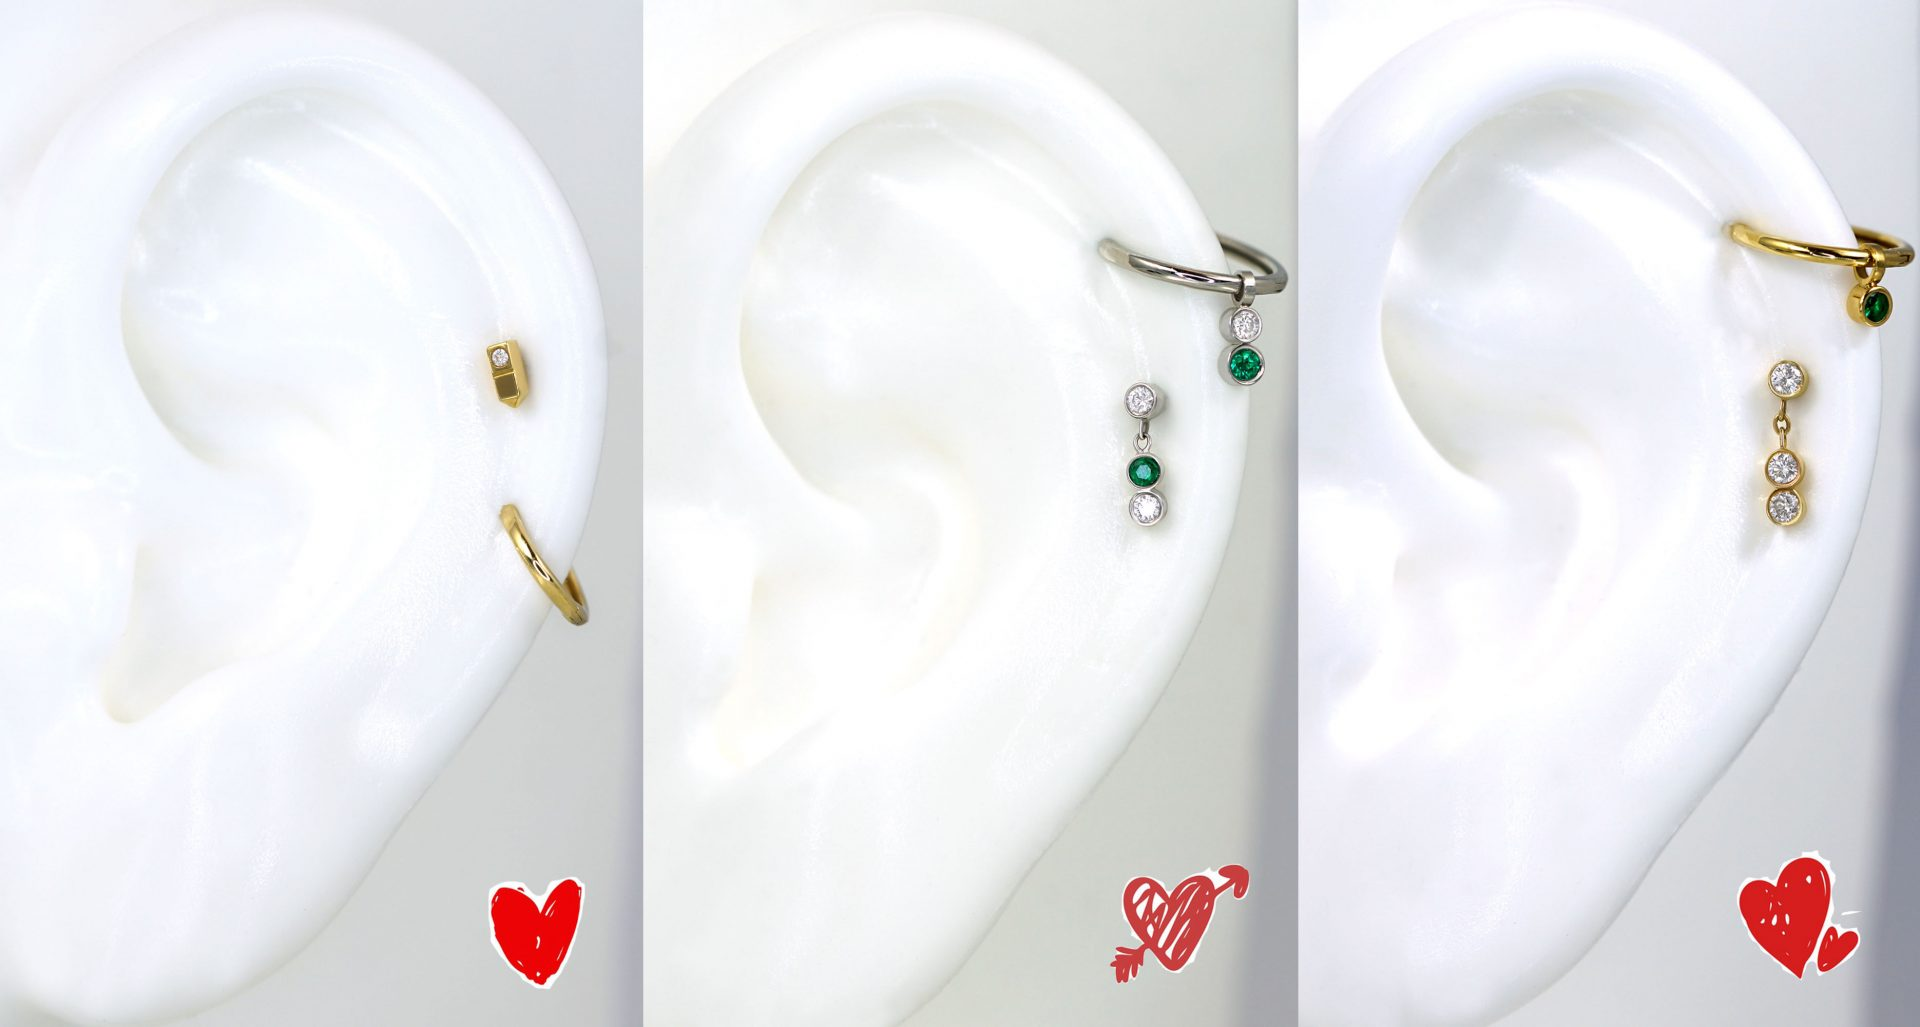 Valentines Day Gift for Her. Luxury Piercing Earrings Set Price. Lena Cohen.